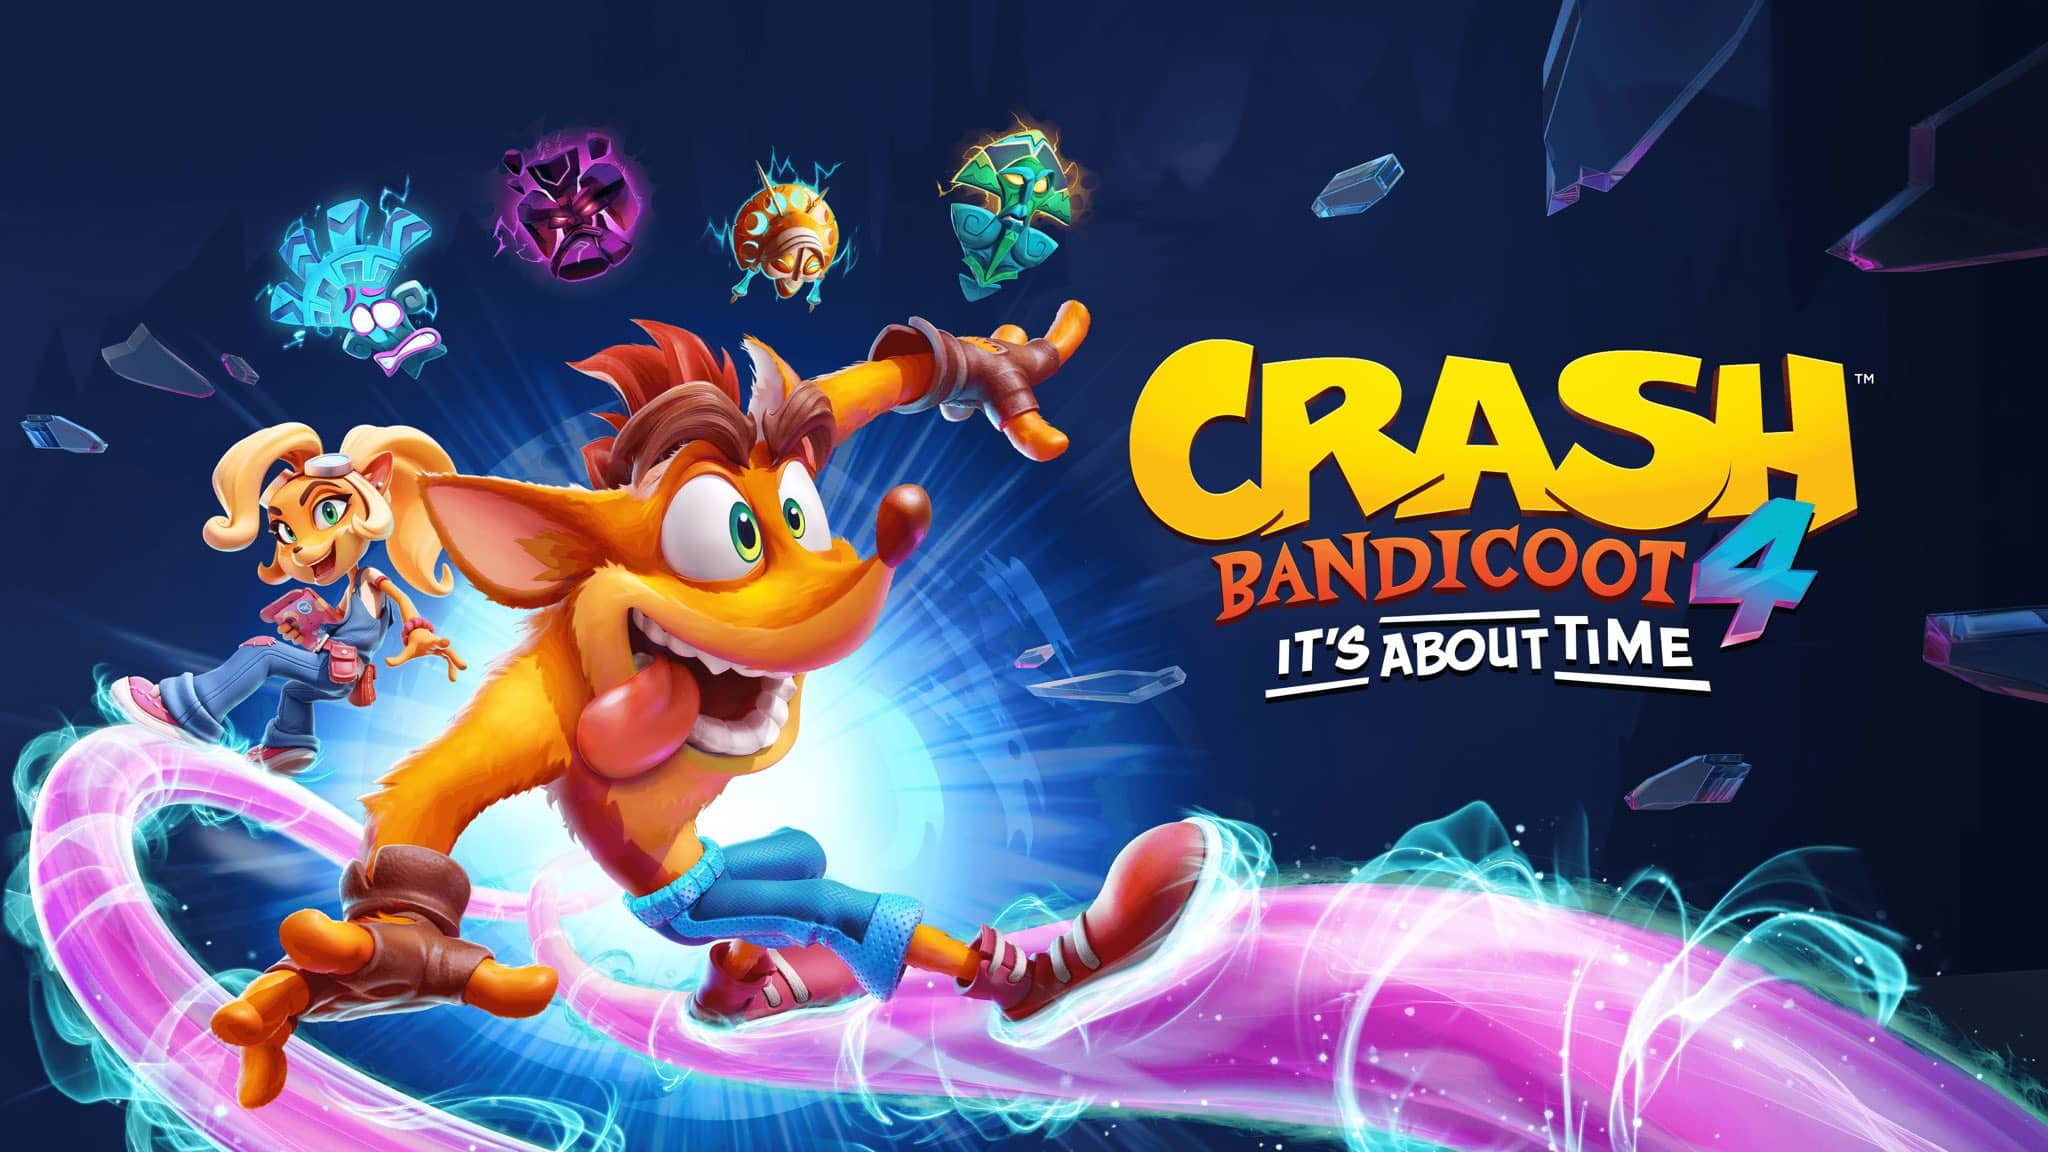 Crash Bandicoot 4: It's About Time Microtransactions